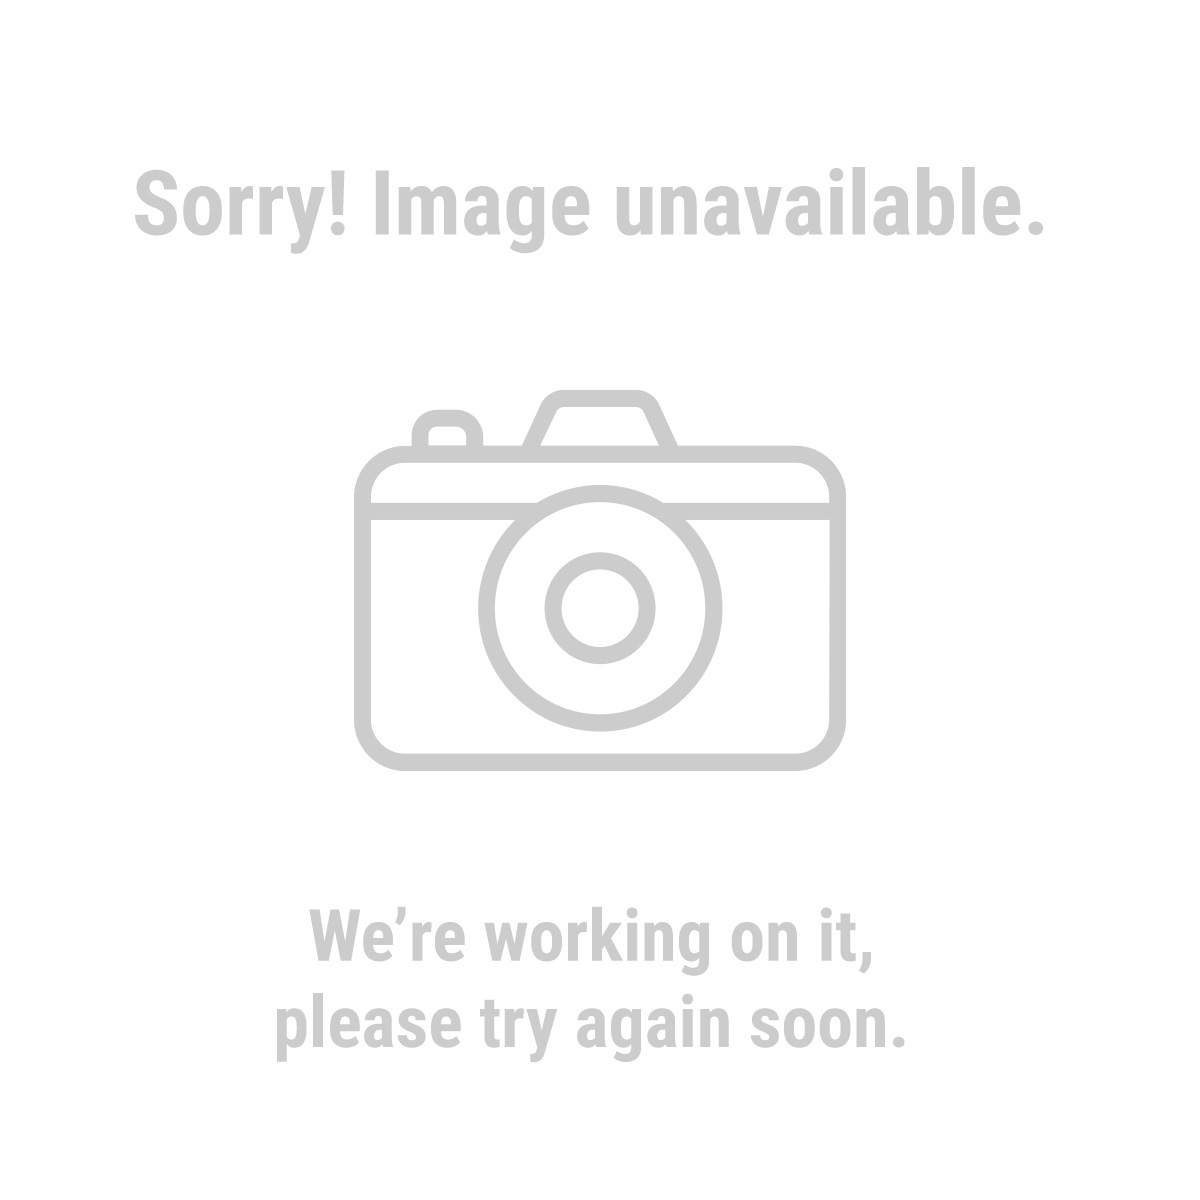 Pittsburgh® Automotive 62116 3 ton Steel Heavy Duty Floor Jack with Rapid Pump®